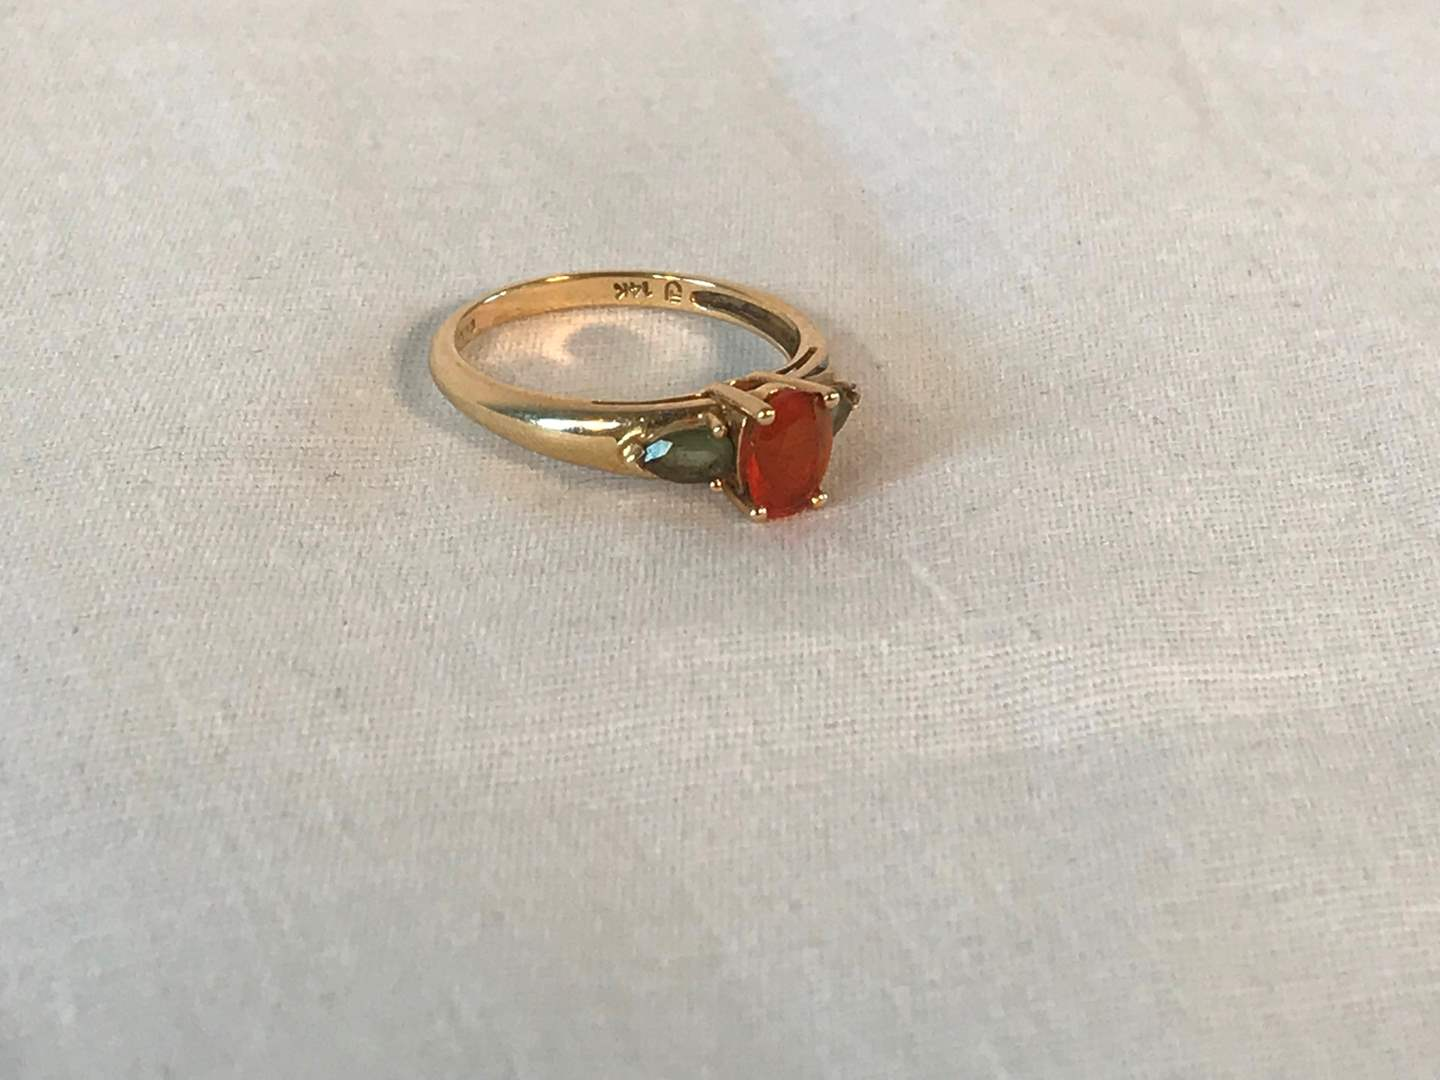 Lot # 240 - 14k Gold Ring w/ Precious Stones - 2.66 grams (Tested). (main image)